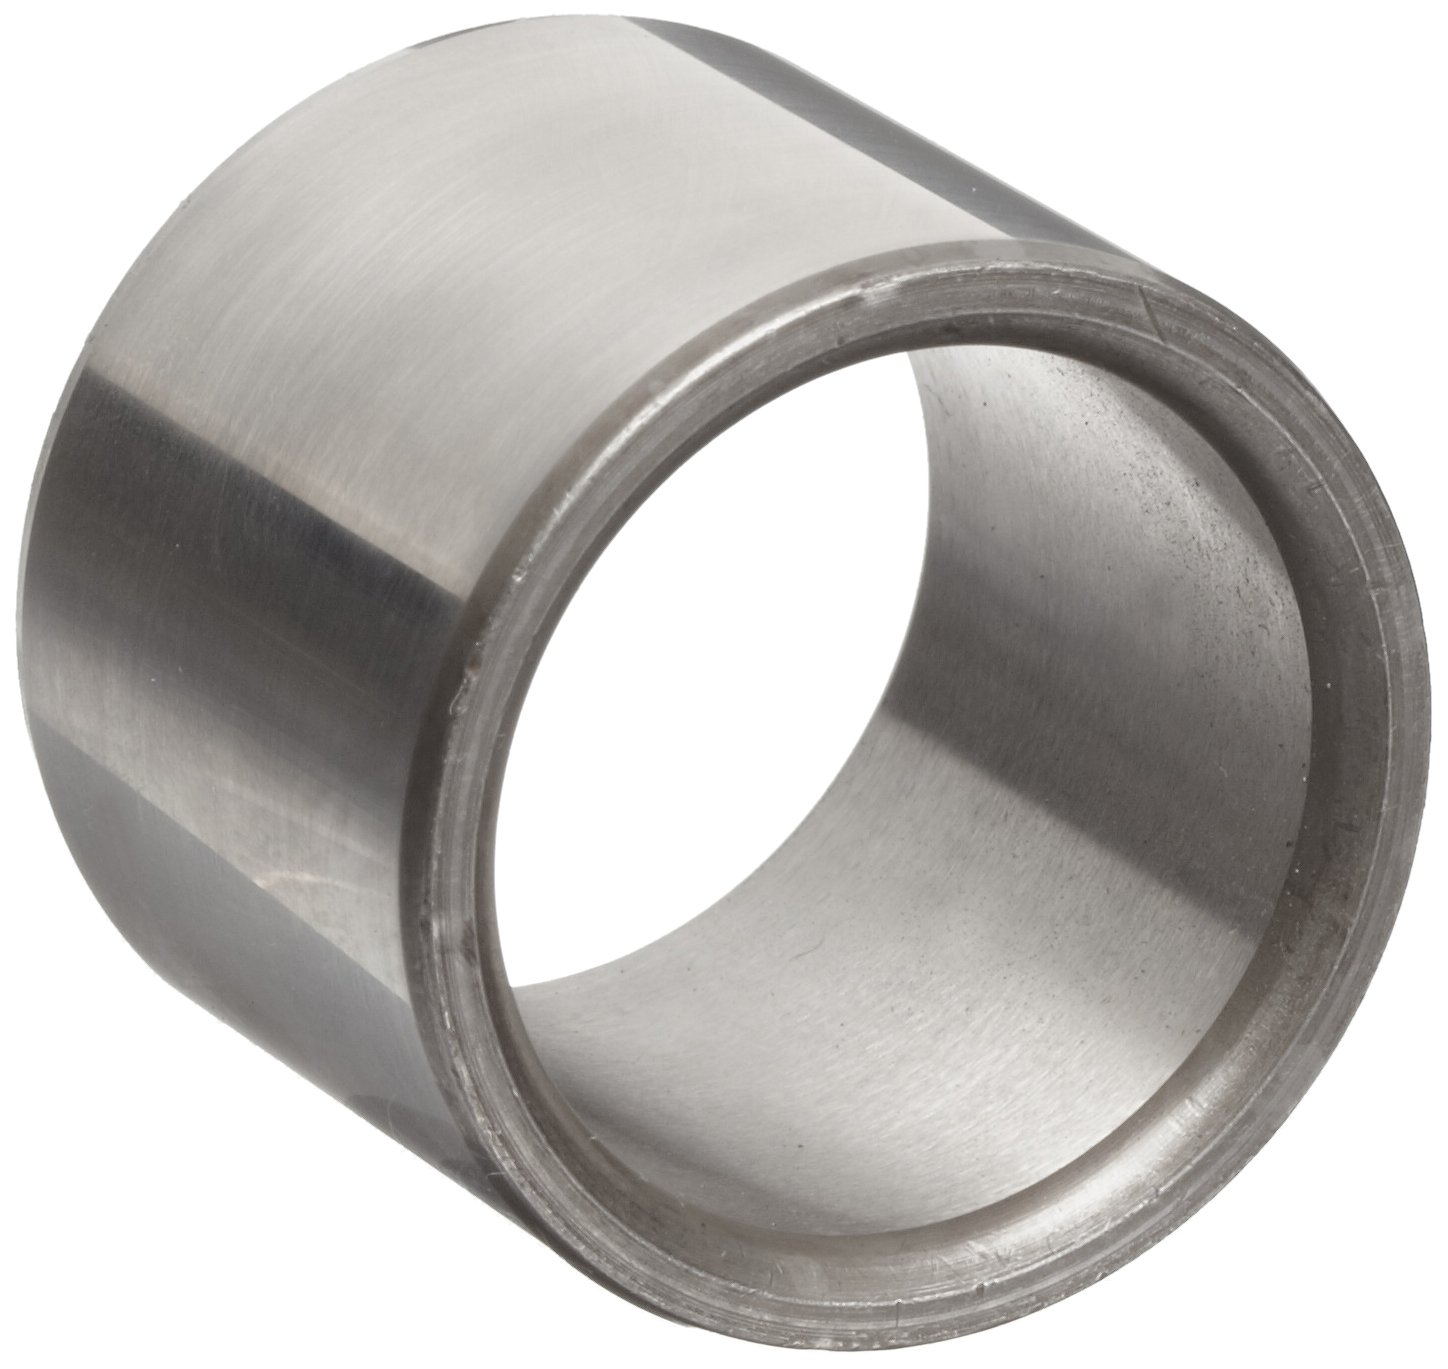 "B00207GHLM INA SCE68 Needle Roller Bearing, Steel Cage, Open End, Inch, 3/8"" ID, 9/16"" OD, 1/2"" Width, 29500rpm Maximum Rotational Speed, 1490lbf Static Load Capacity, 1300lbf Dynamic Load Capacity 71sGp7rf6LL"